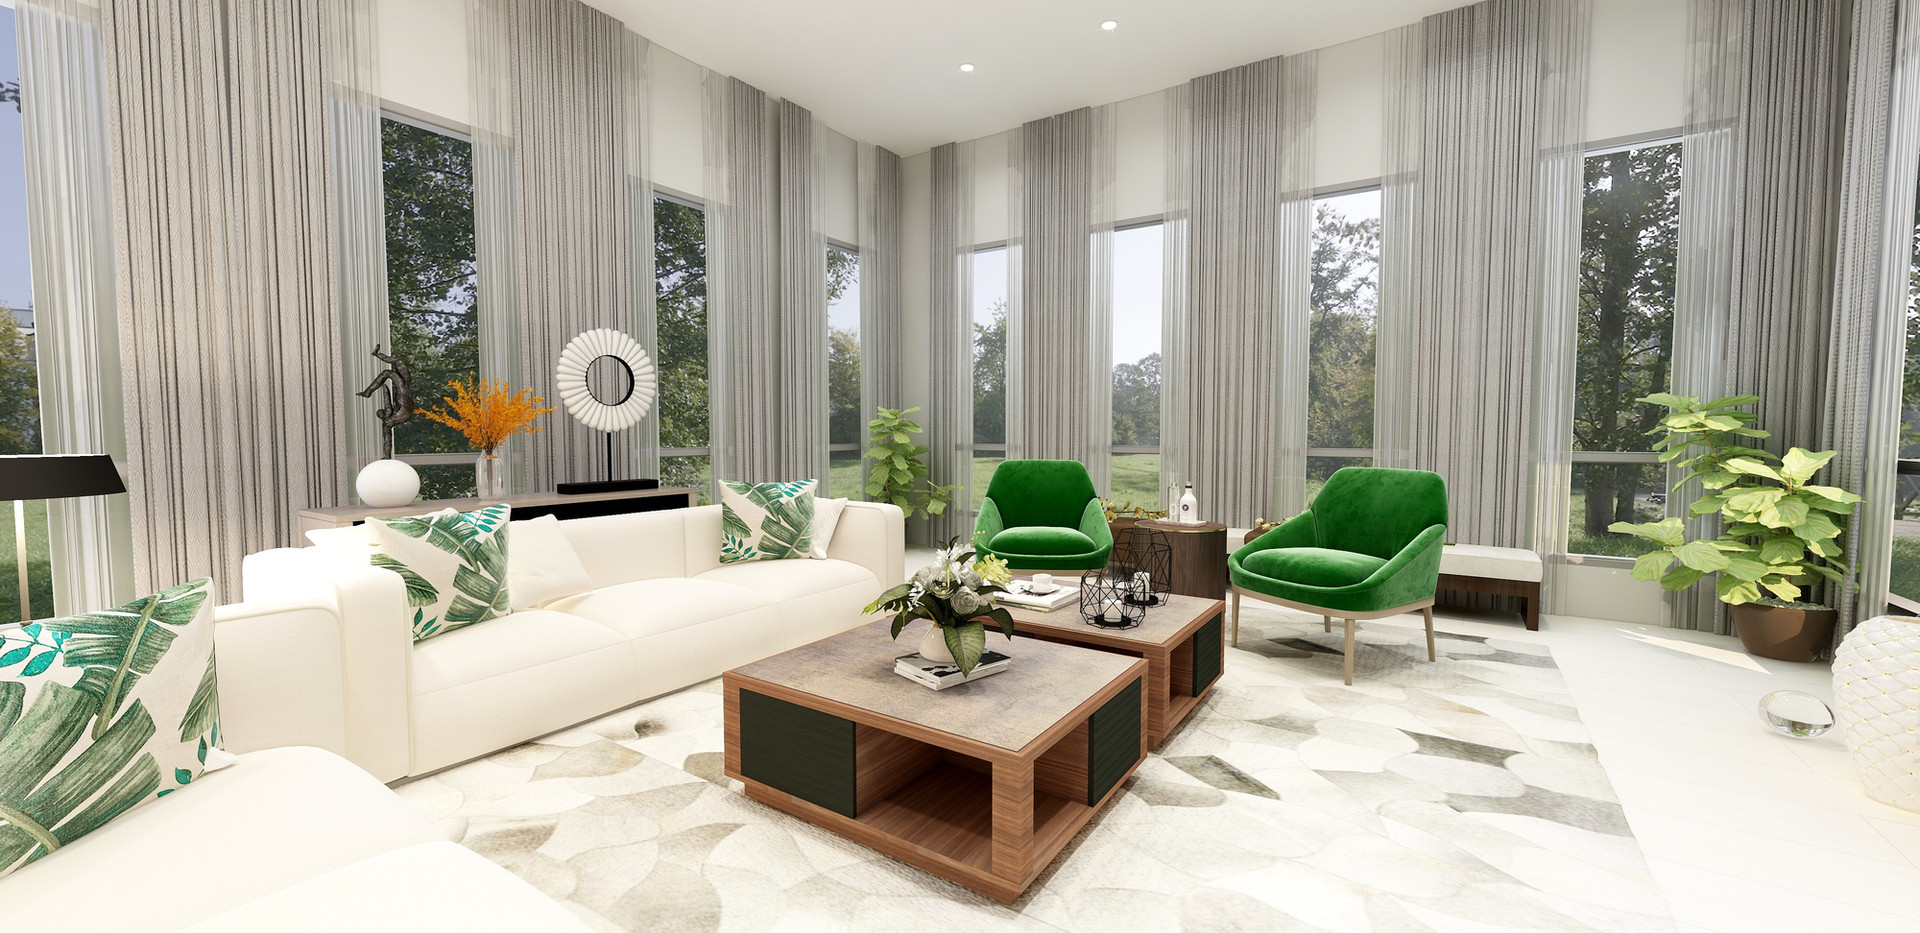 Rendering and Design by Sonja Capasso